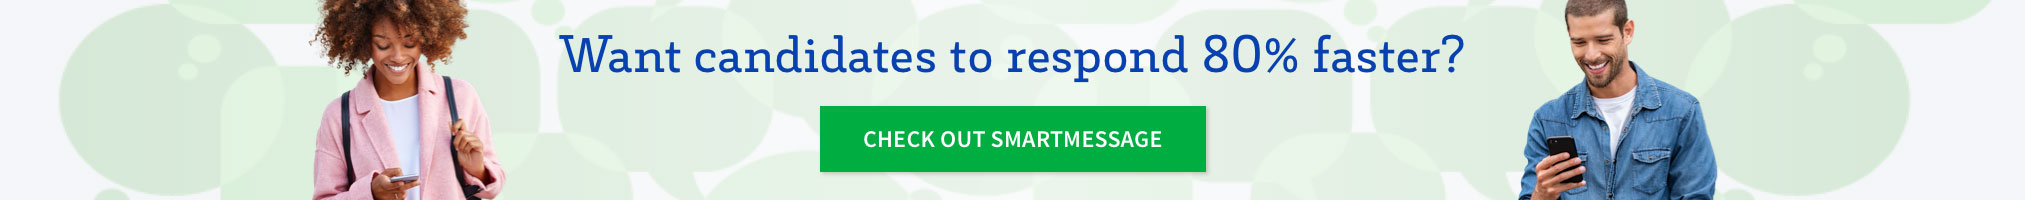 Check out SmartMessage